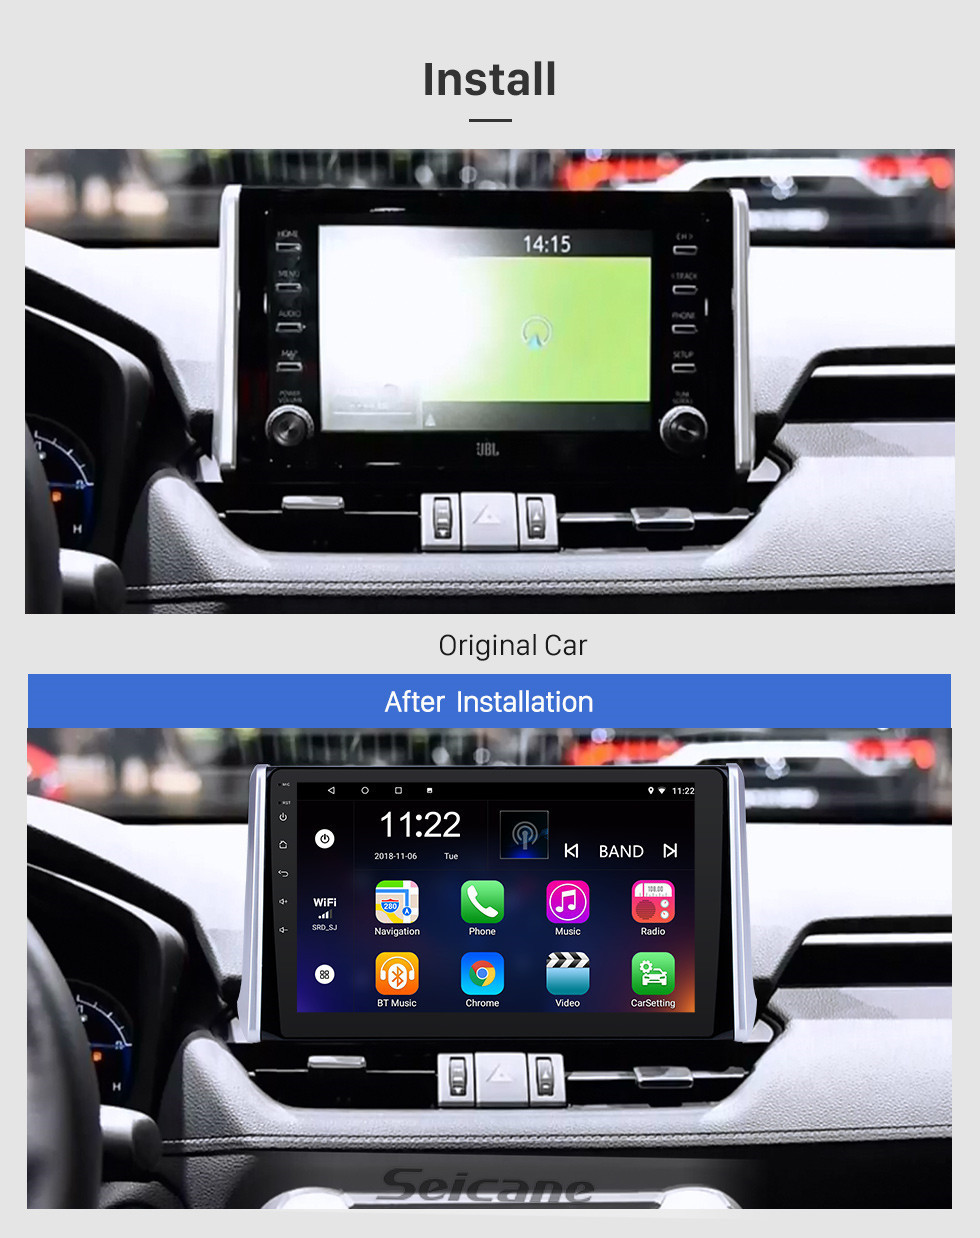 Seicane 10.1 inch Android 10.0 HD Touchscreen GPS Navigation Radio for 2019 Toyota RAV4 with Bluetooth USB WIFI AUX support Carplay Rear camera OBD TPMS